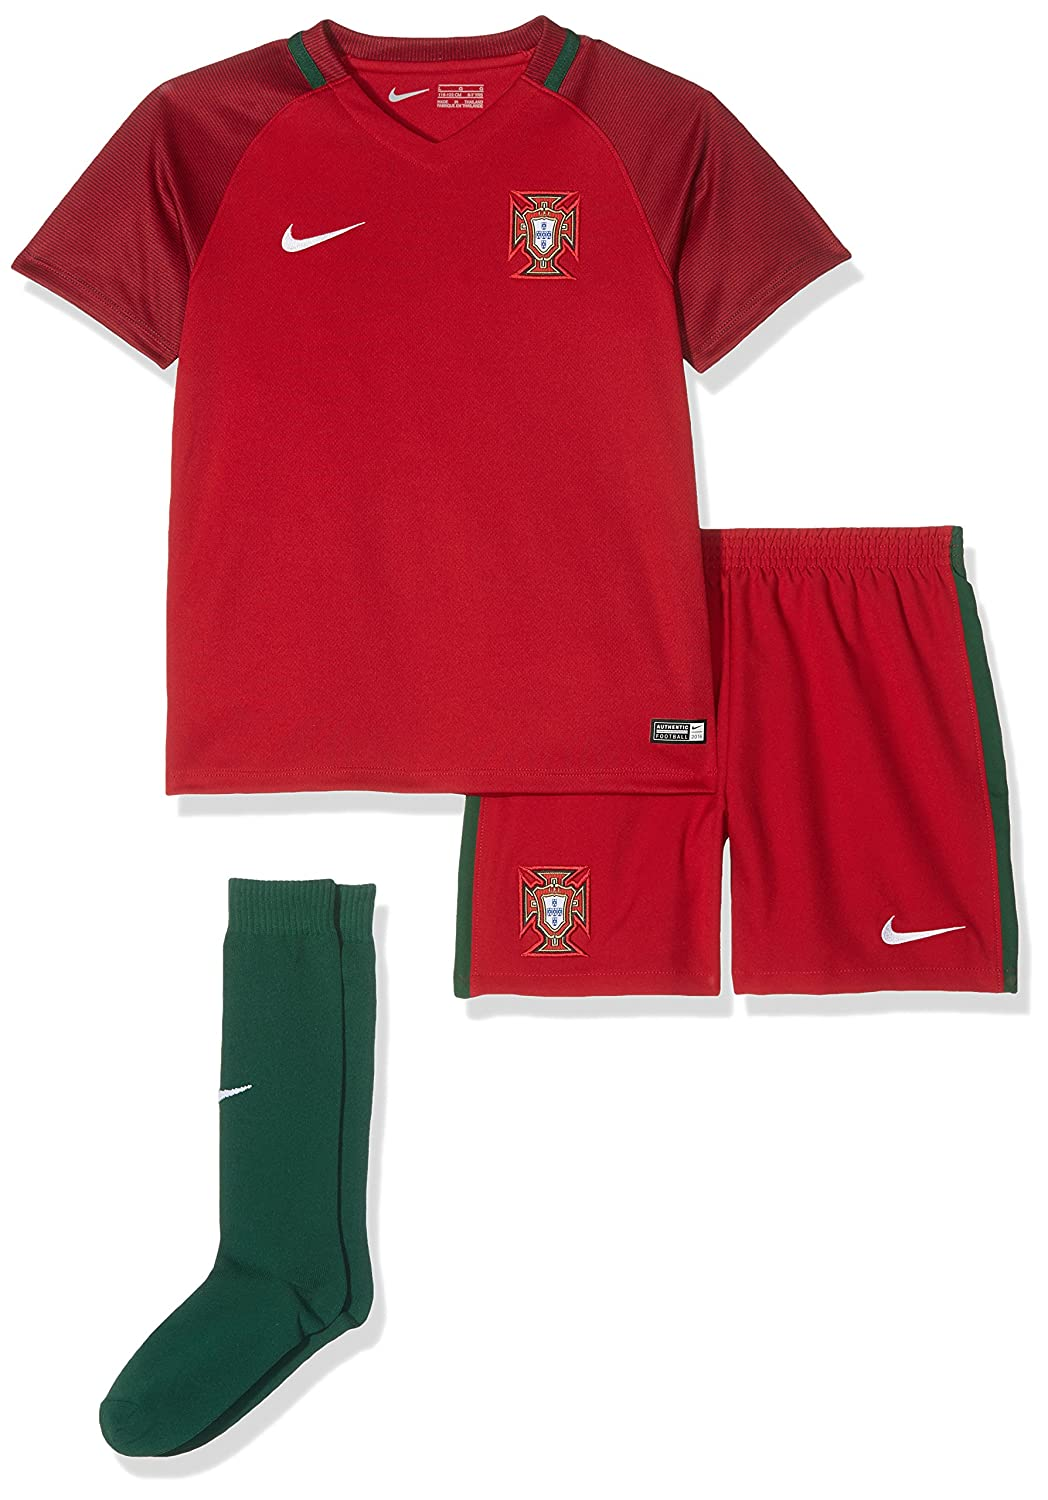 buy popular 3da2d a2d47 NIKE Portugal Little Kids Home Infant/Toddler Soccer Kit